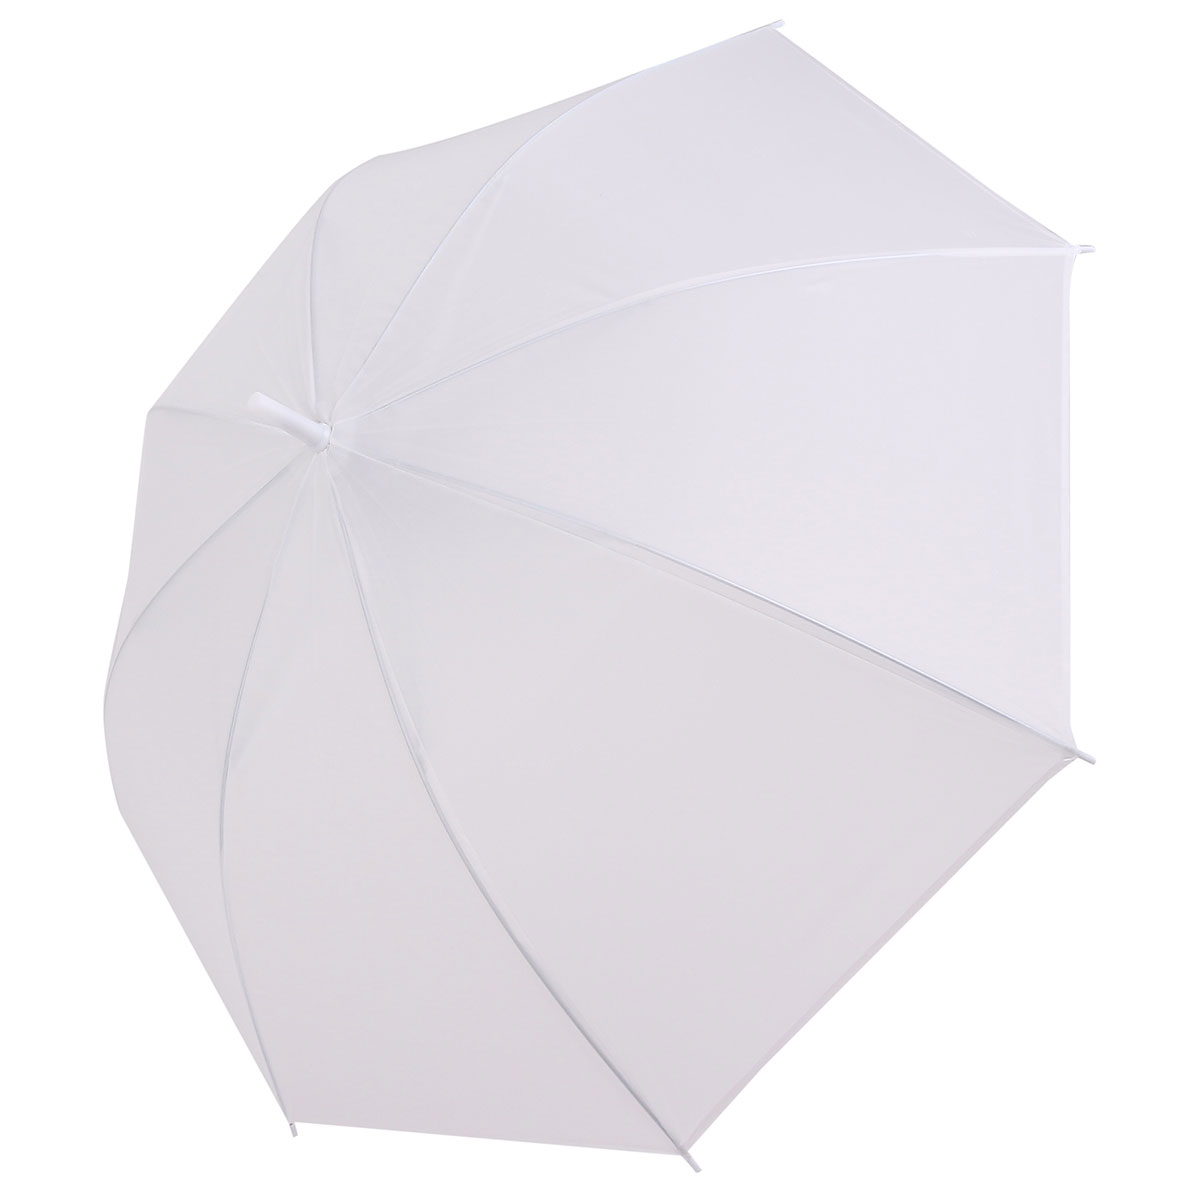 Dome White Transparent Umbrella Large Clear Scrub Parasol Sun Rain for Ladies Wedding